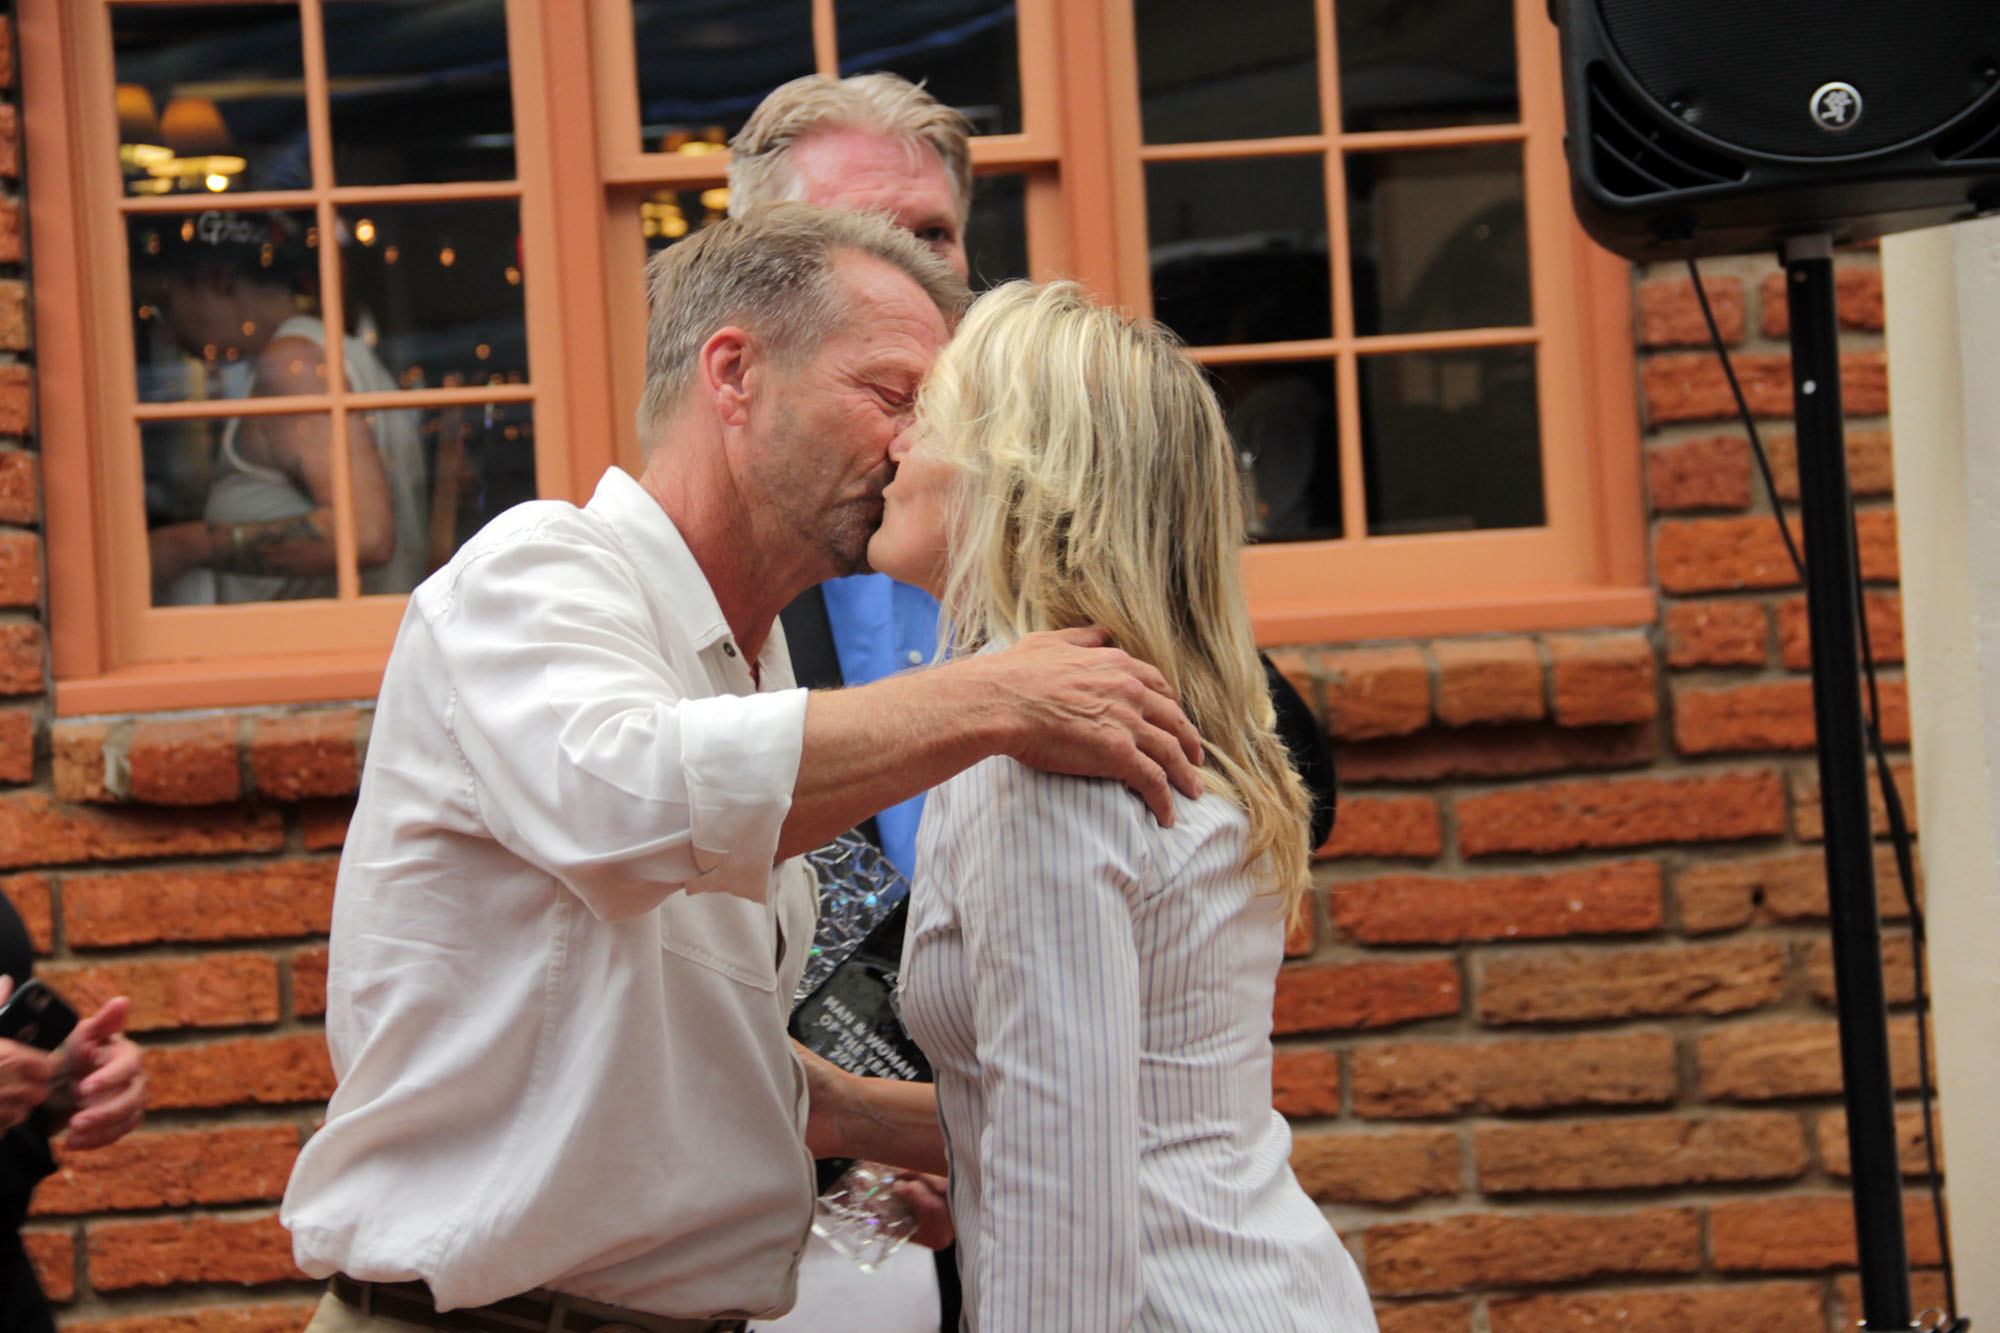 Scott and Diana Schmitt embrace for a kiss after being presented with the Man and Woman of the Year during the San Juan Capistrano Chamber of Commerce's Annual Installation and Awards Banquet on Thursday, July 11. Photo: Shawn Raymundo